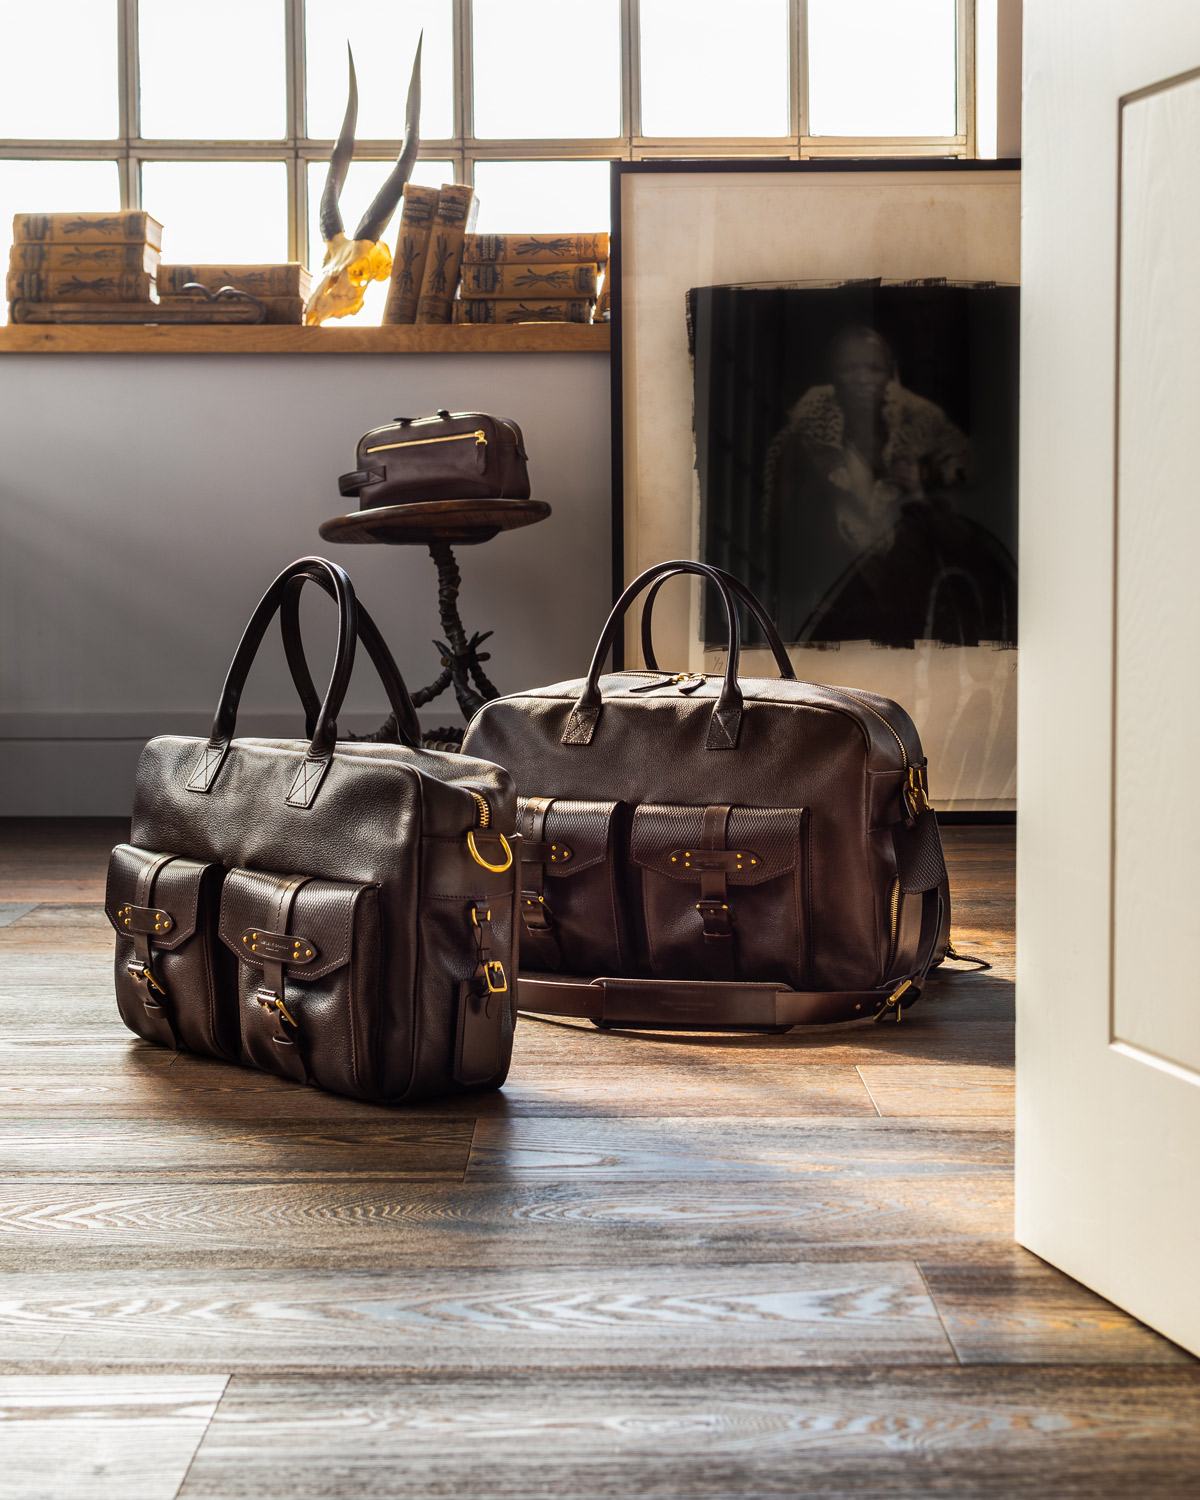 New Bournbrook Travel Bag Collection